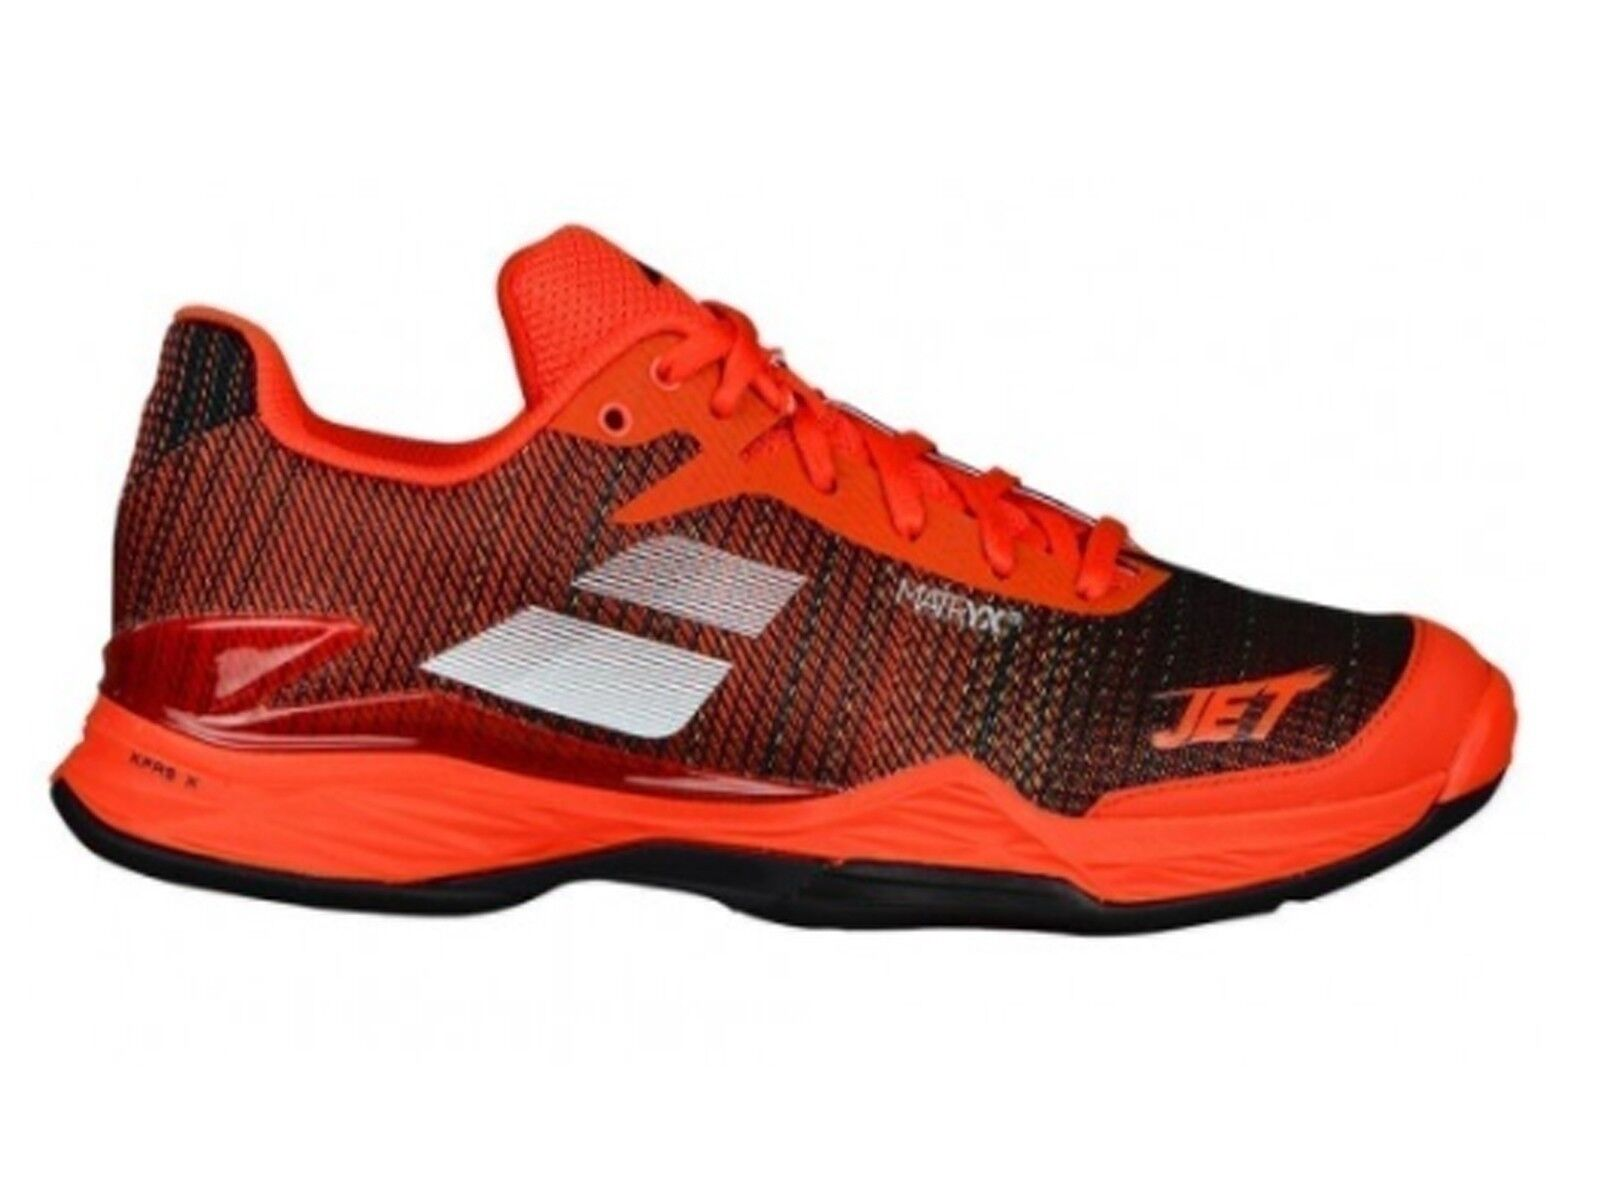 SCARPE TENNIS UOMO 6008 BABOLAT  30S18631 6008 UOMO  JET MACH II CLAY ORANGE CO ec5577